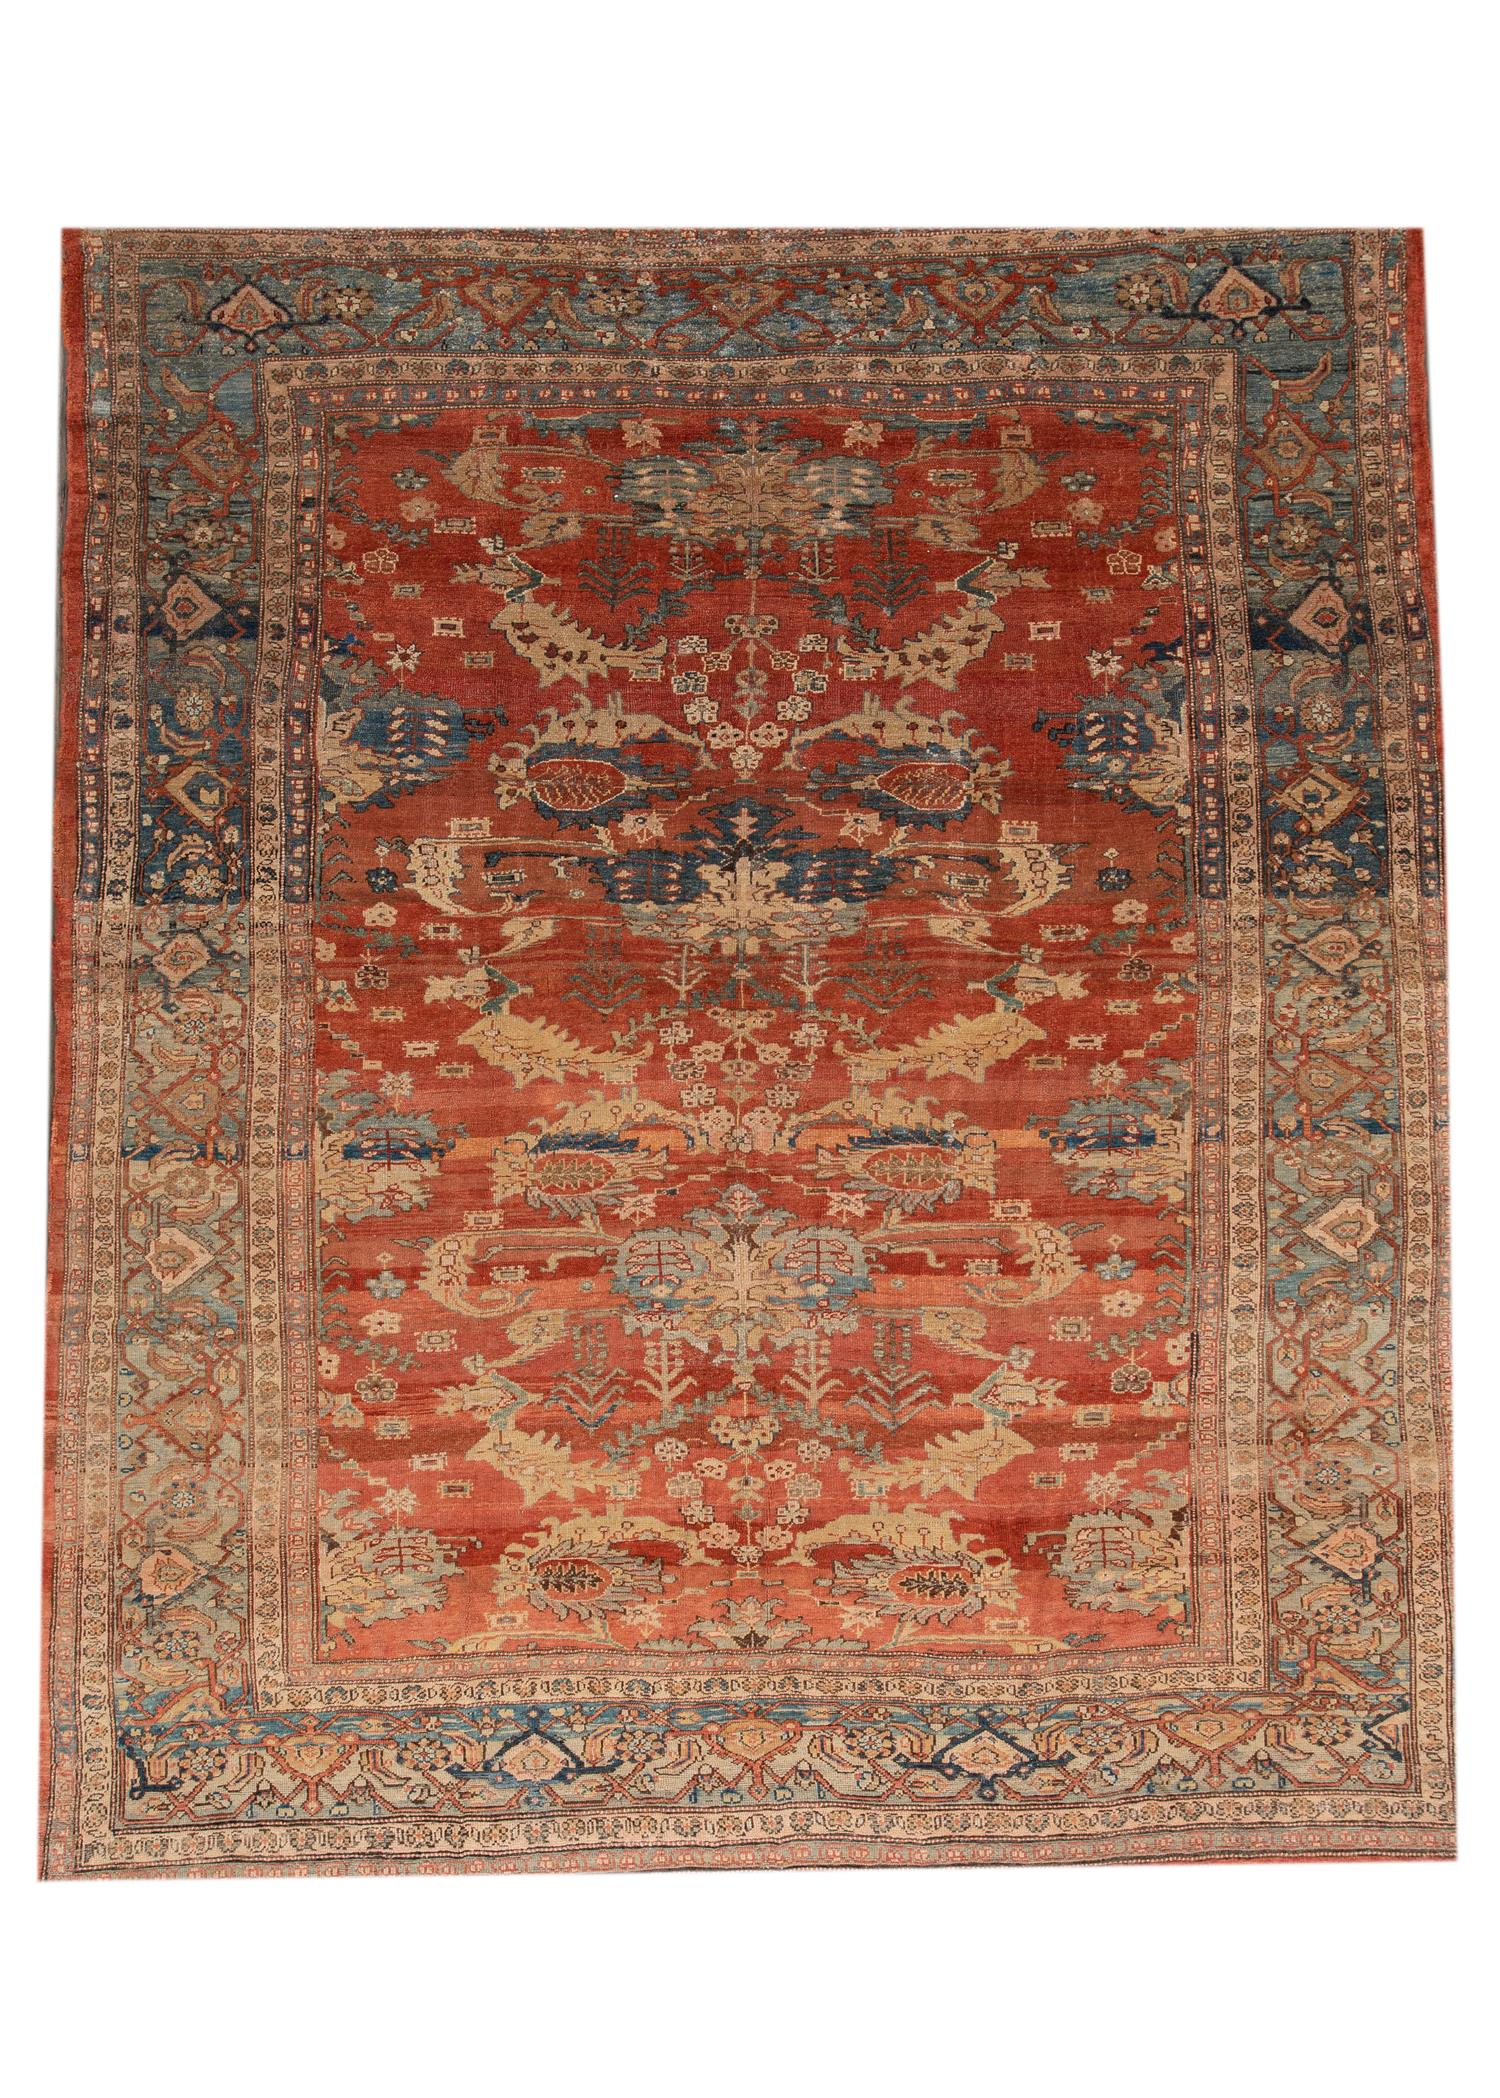 Vintage Persian Tribal Bakshaish Rug, 10X12